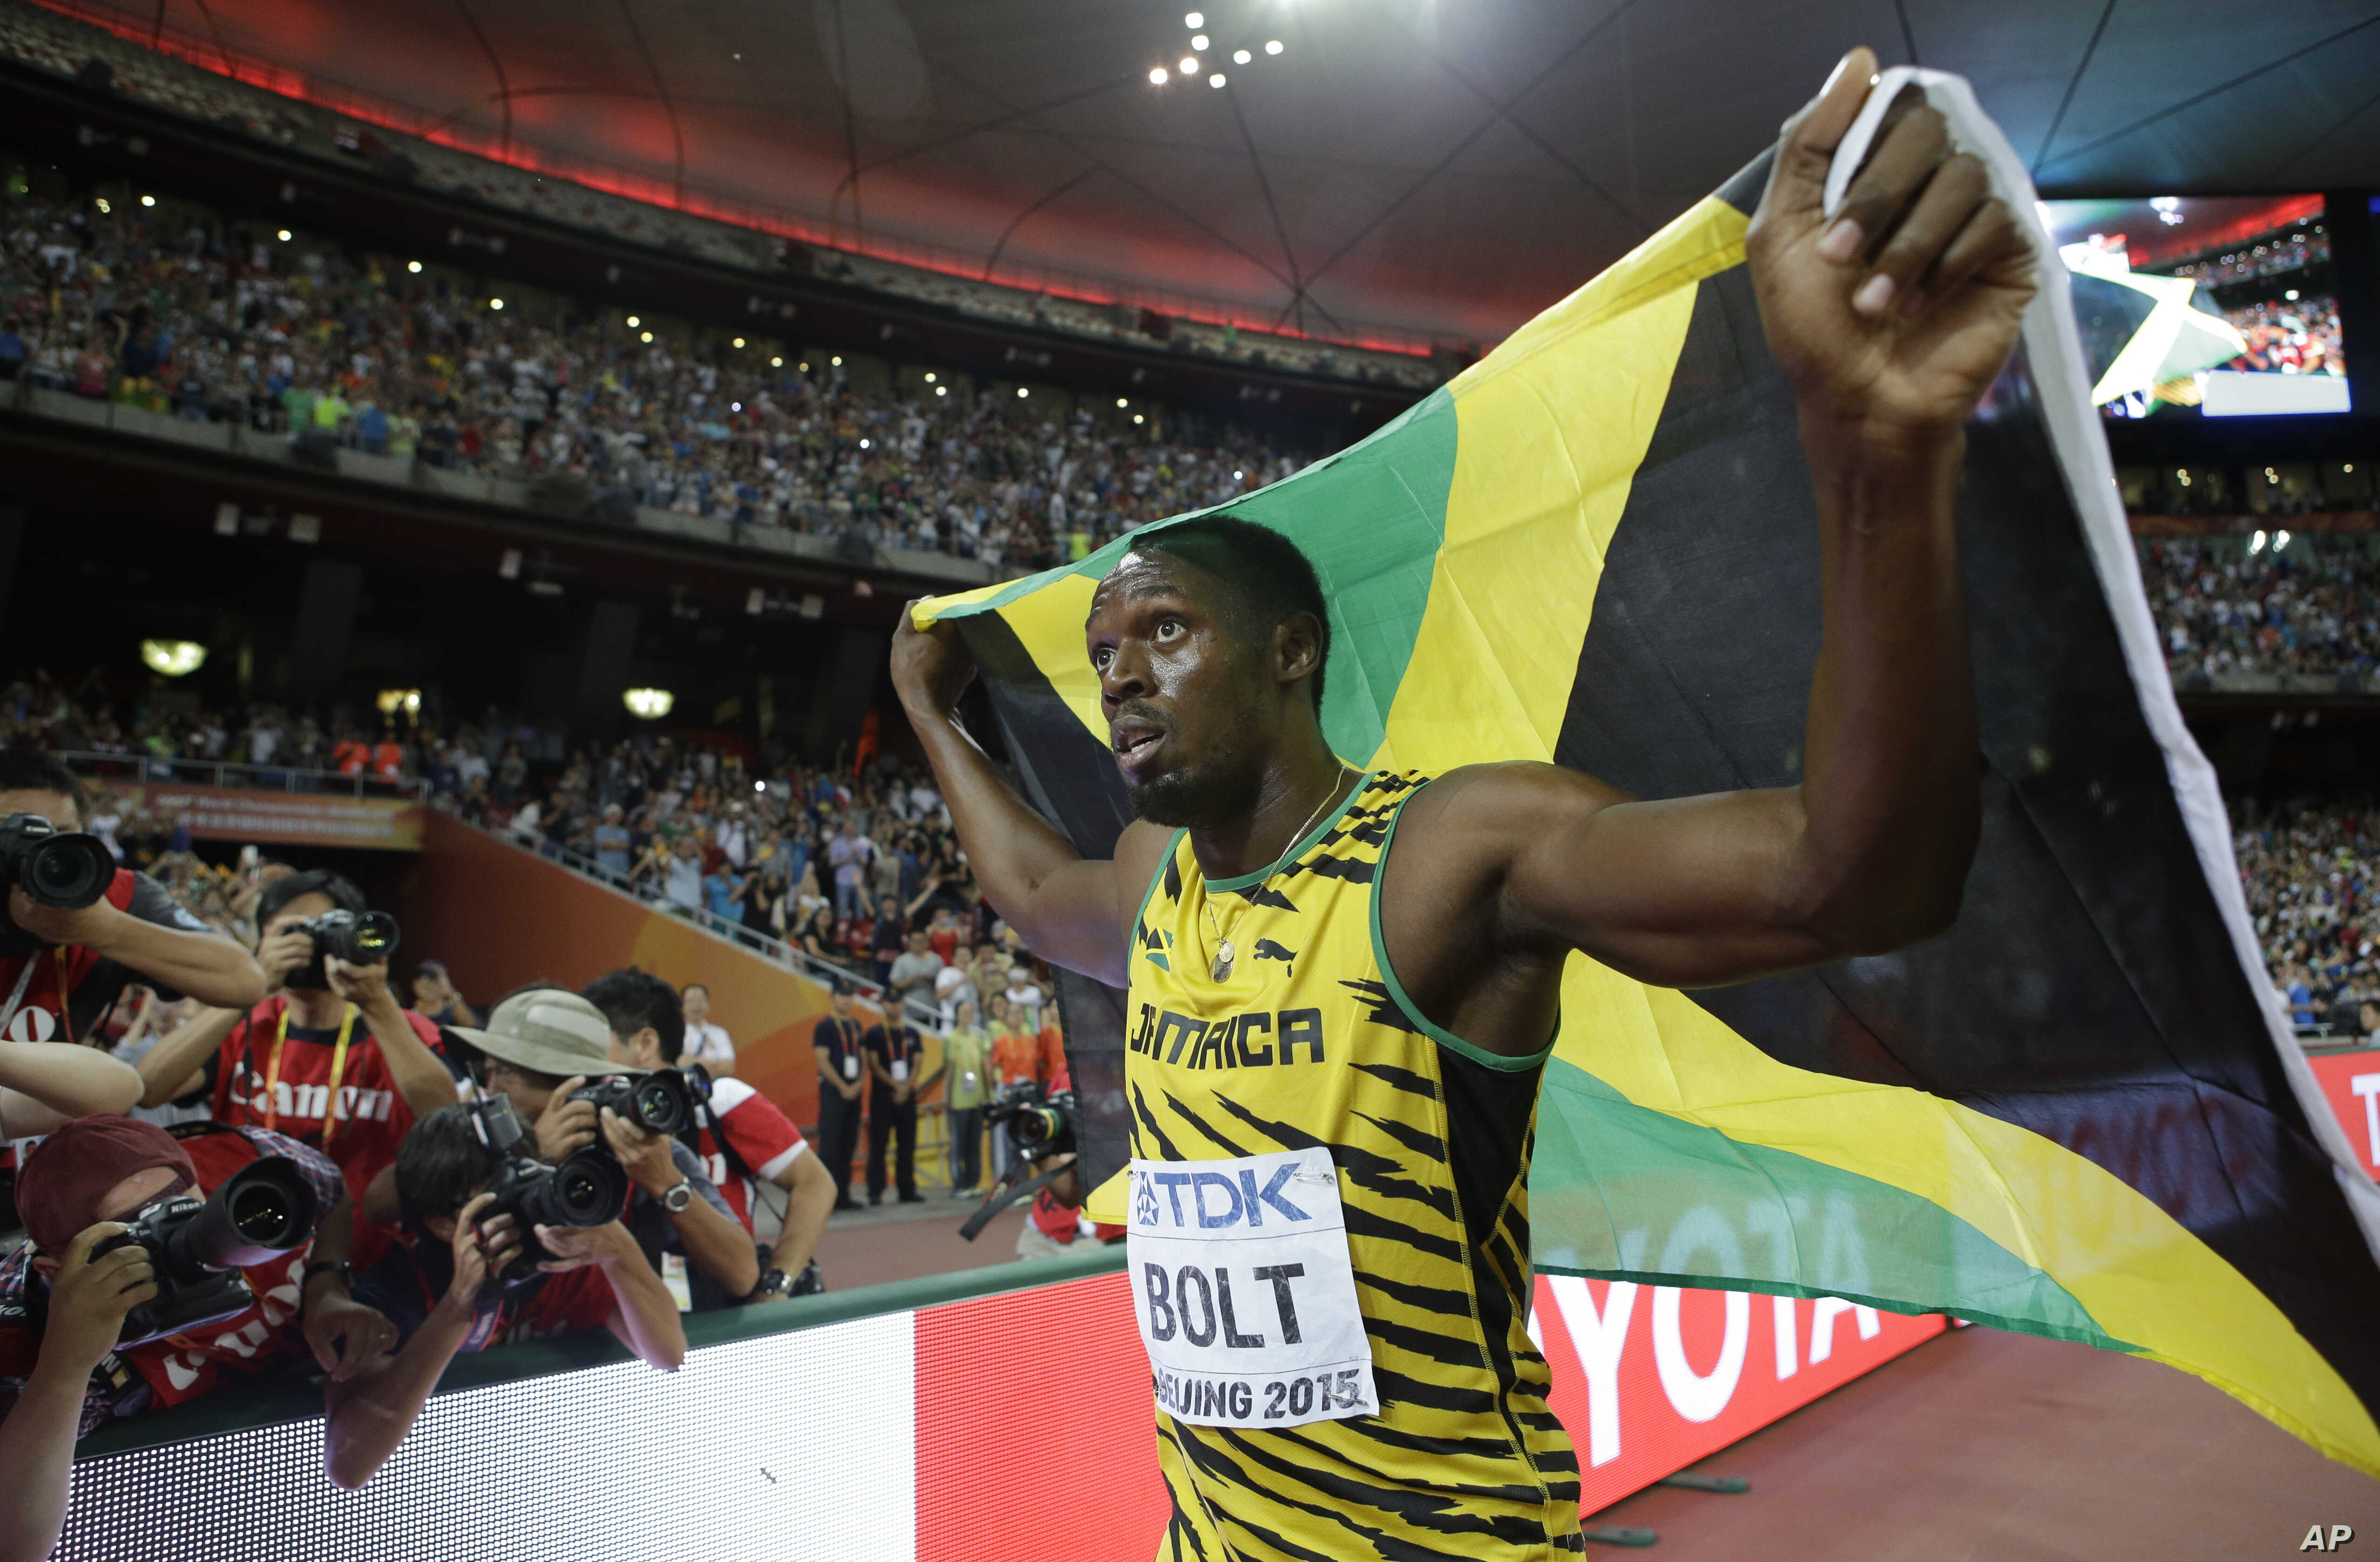 Jamaica's Usain Bolt celebrates after winning the gold medal in the men's 100m ahead of United States' at the World Athletics Championships at the Bird's Nest stadium in Beijing, Sunday, Aug. 23, 2015.